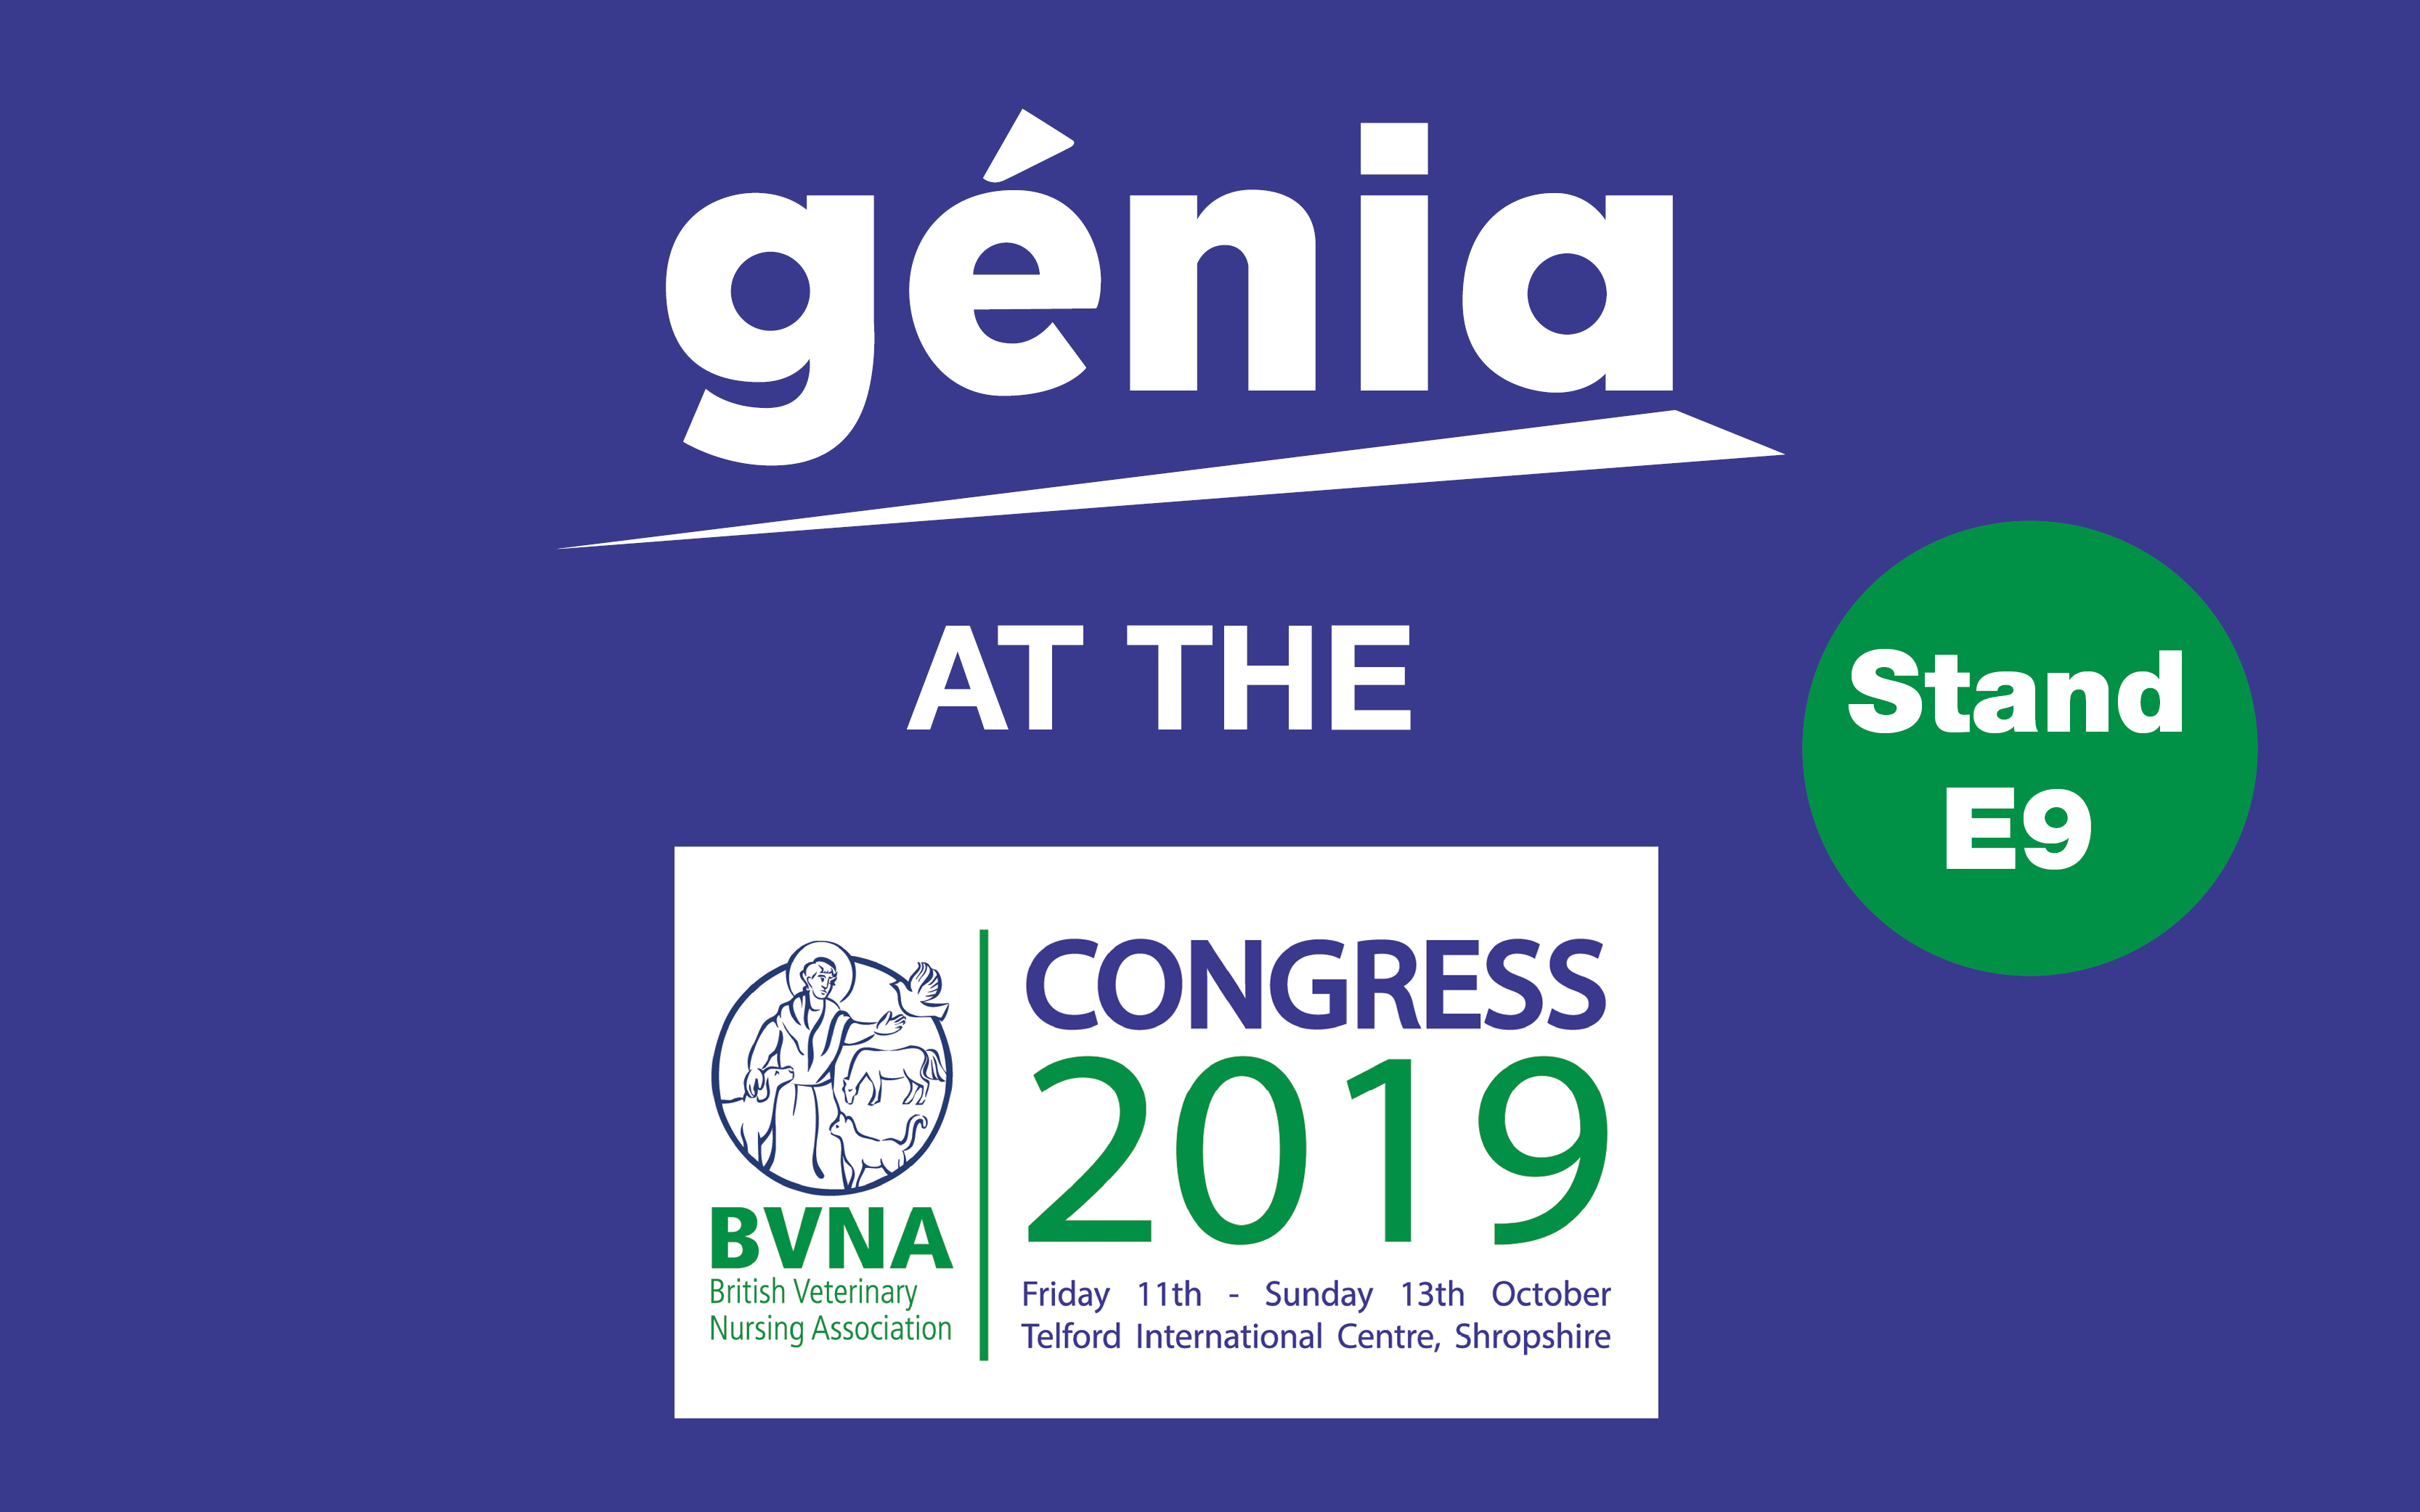 Genia will be present on the BVNA !